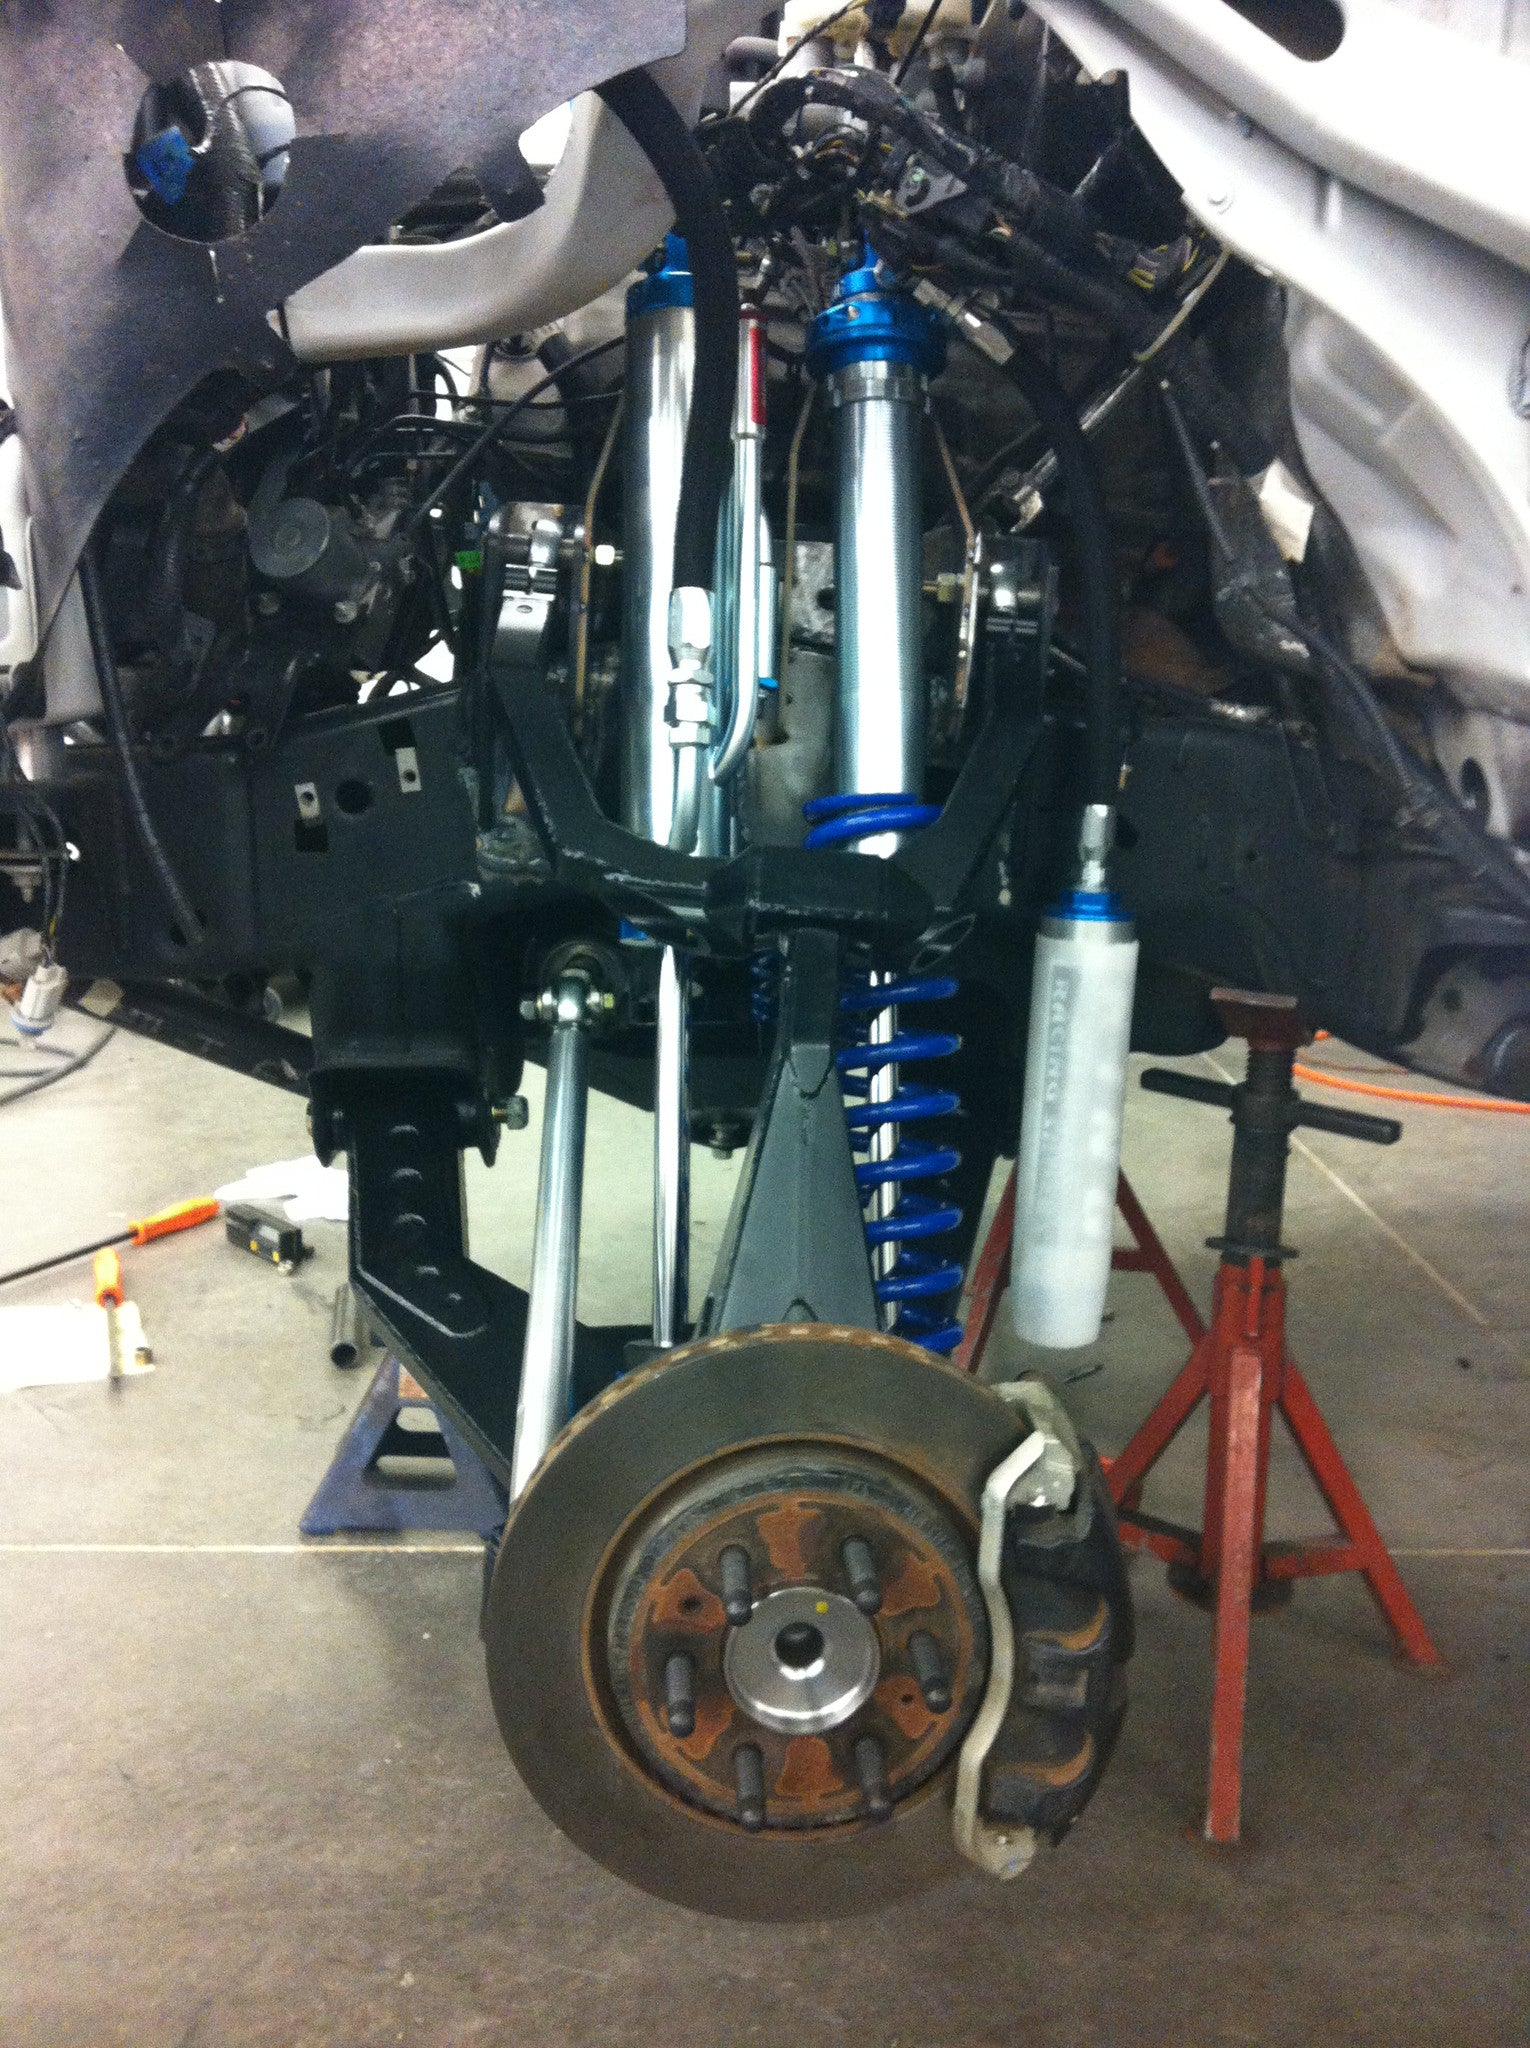 Raptor Long Travel Front Suspension Kit - Gen 1